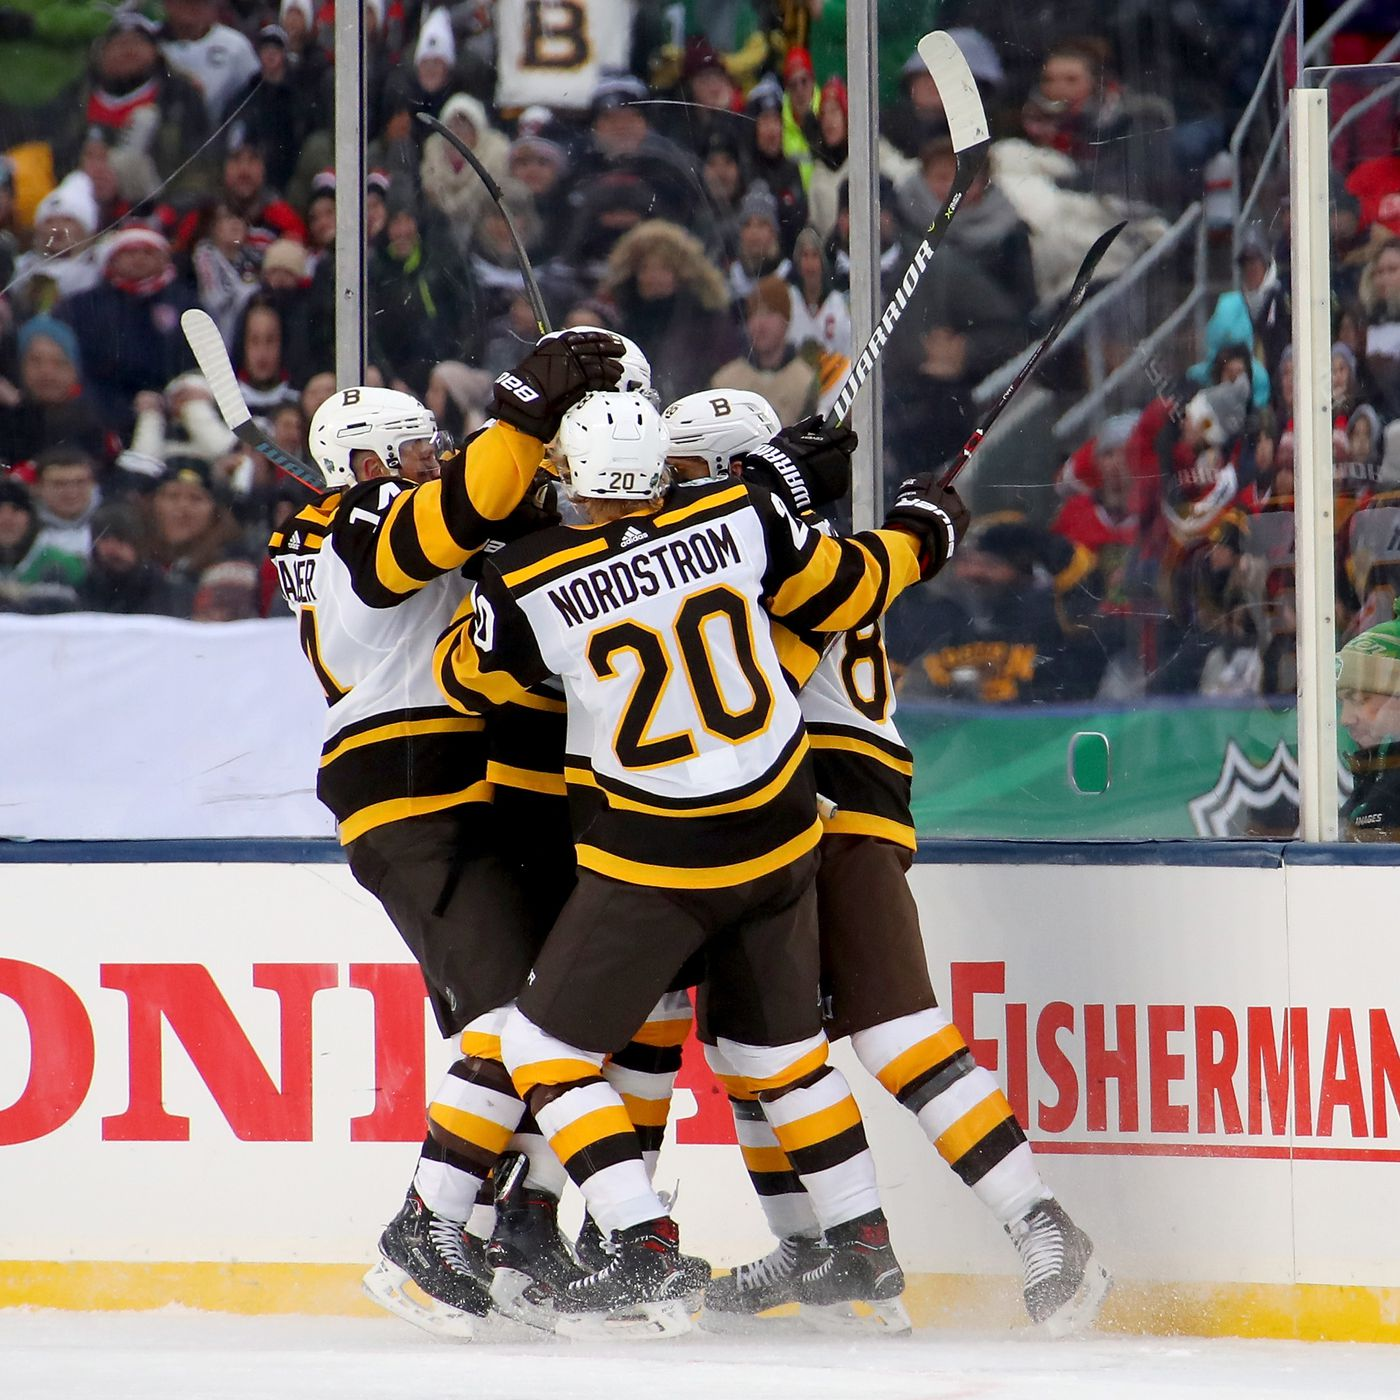 772f23687a6 2019 Winter Classic RECAP: Bruins come out on top 4-2! - Stanley Cup of  Chowder